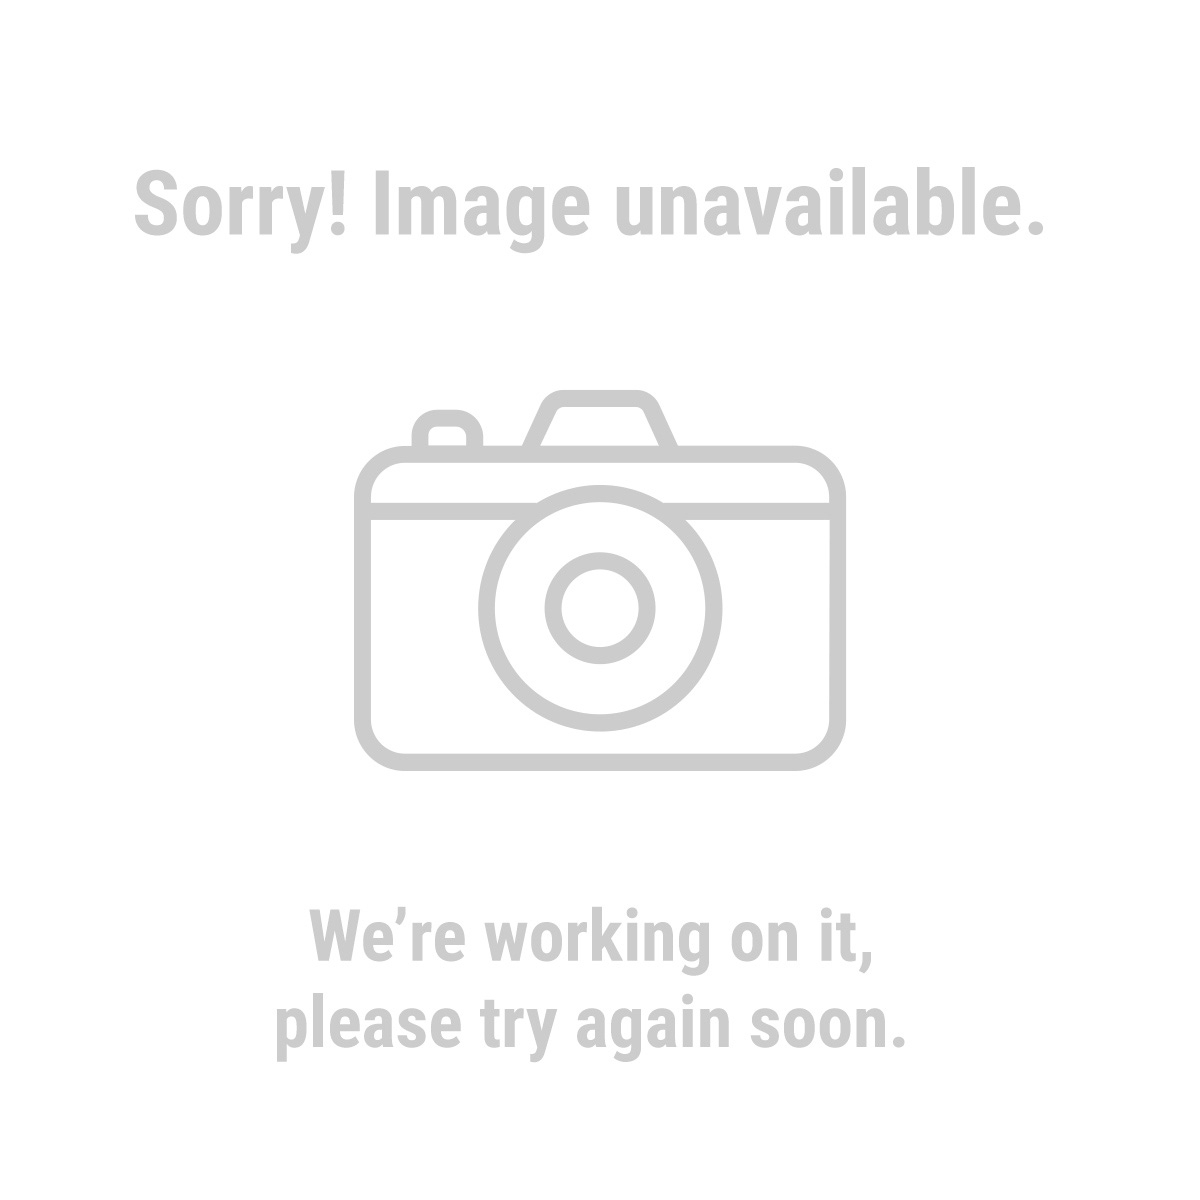 HARDY 95544 1/2 Finger Antivibration Gloves - Large